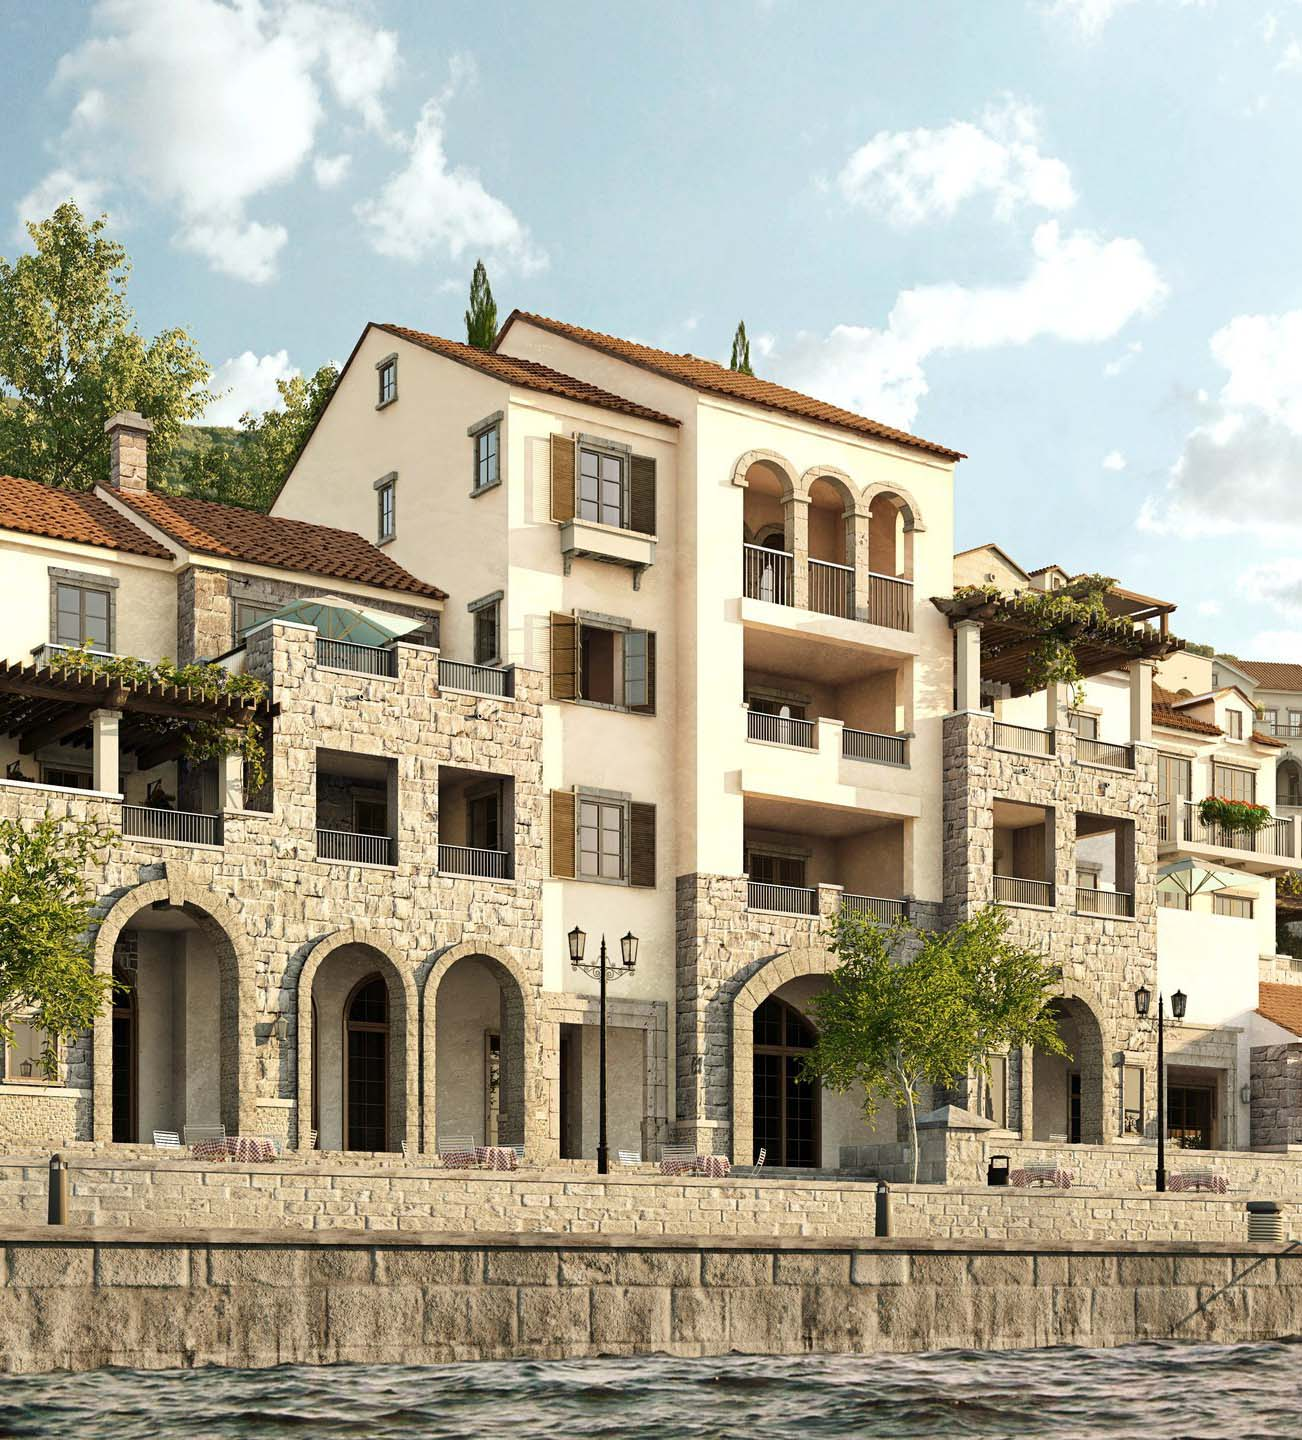 Waterfront Apartments: Waterfront Apartments In Montenegro